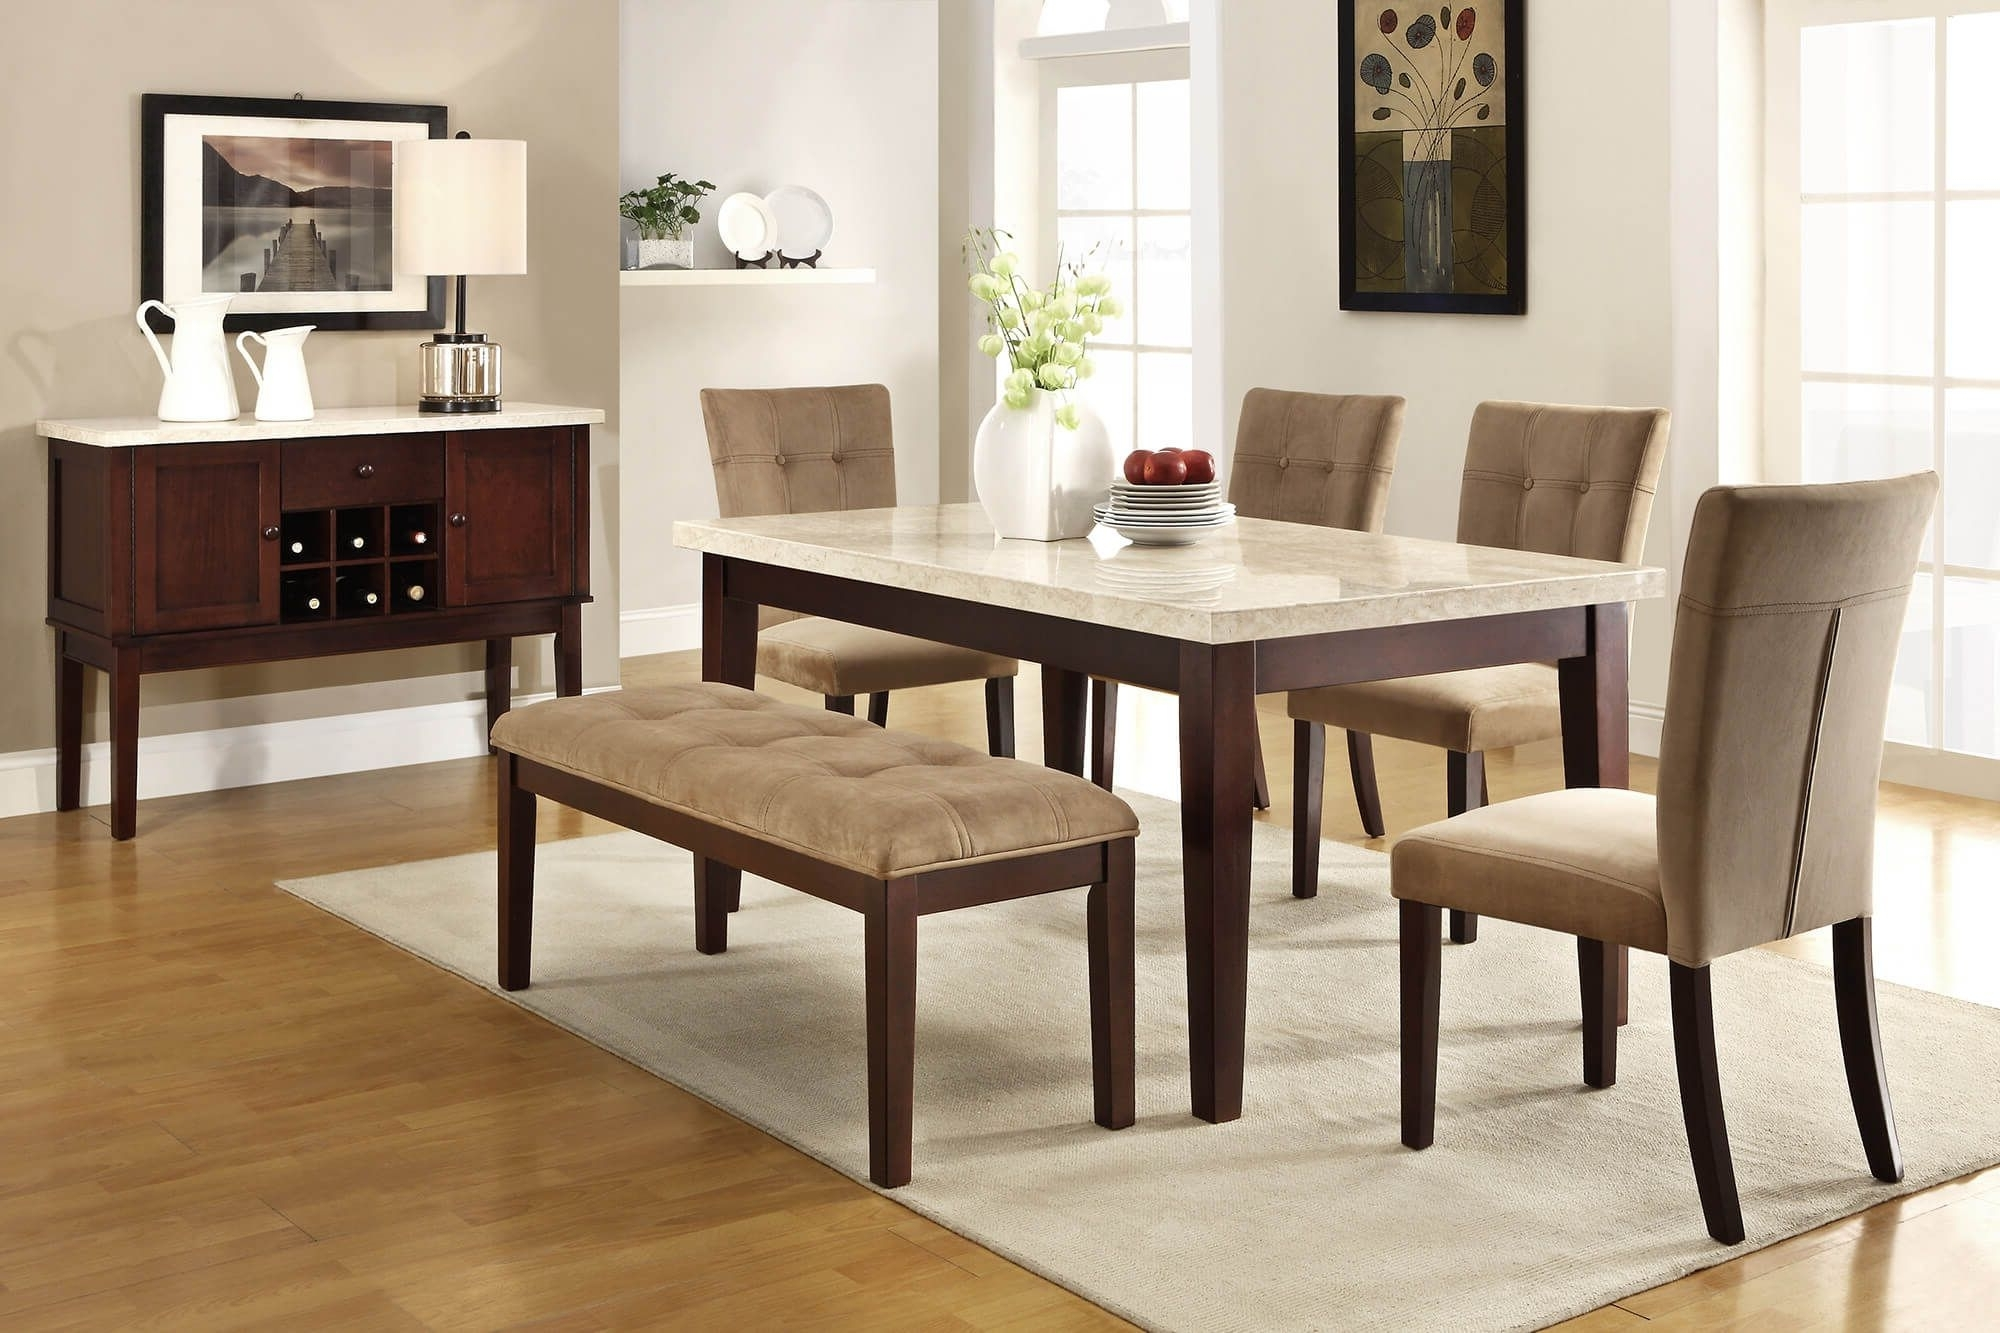 Most Popular Palazzo 9 Piece Dining Sets With Pearson White Side Chairs Pertaining To 26 Dining Room Sets (Big And Small) With Bench Seating (2018) (View 6 of 25)